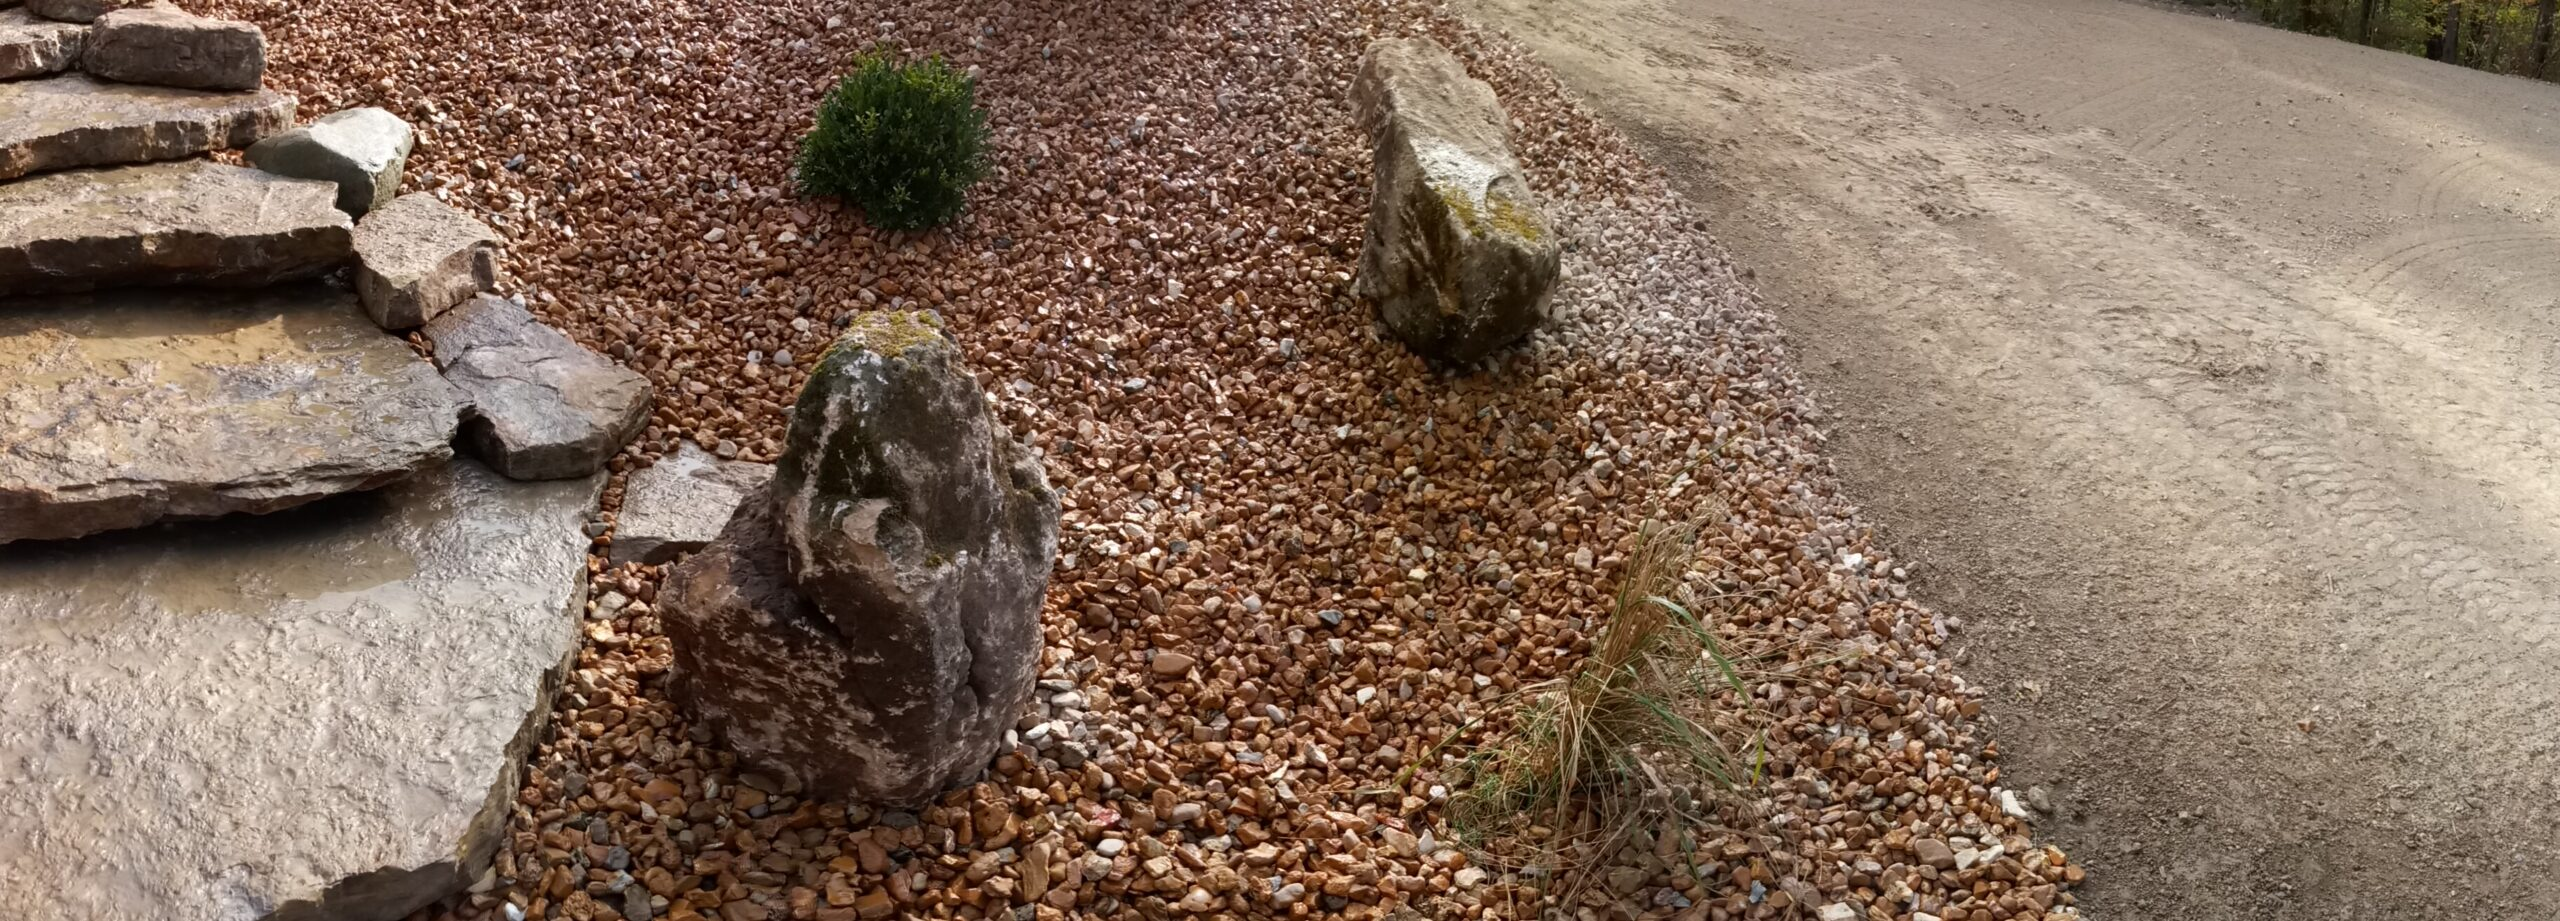 Landscaping and Hardscaping Services, Greater Fort Wayne Area